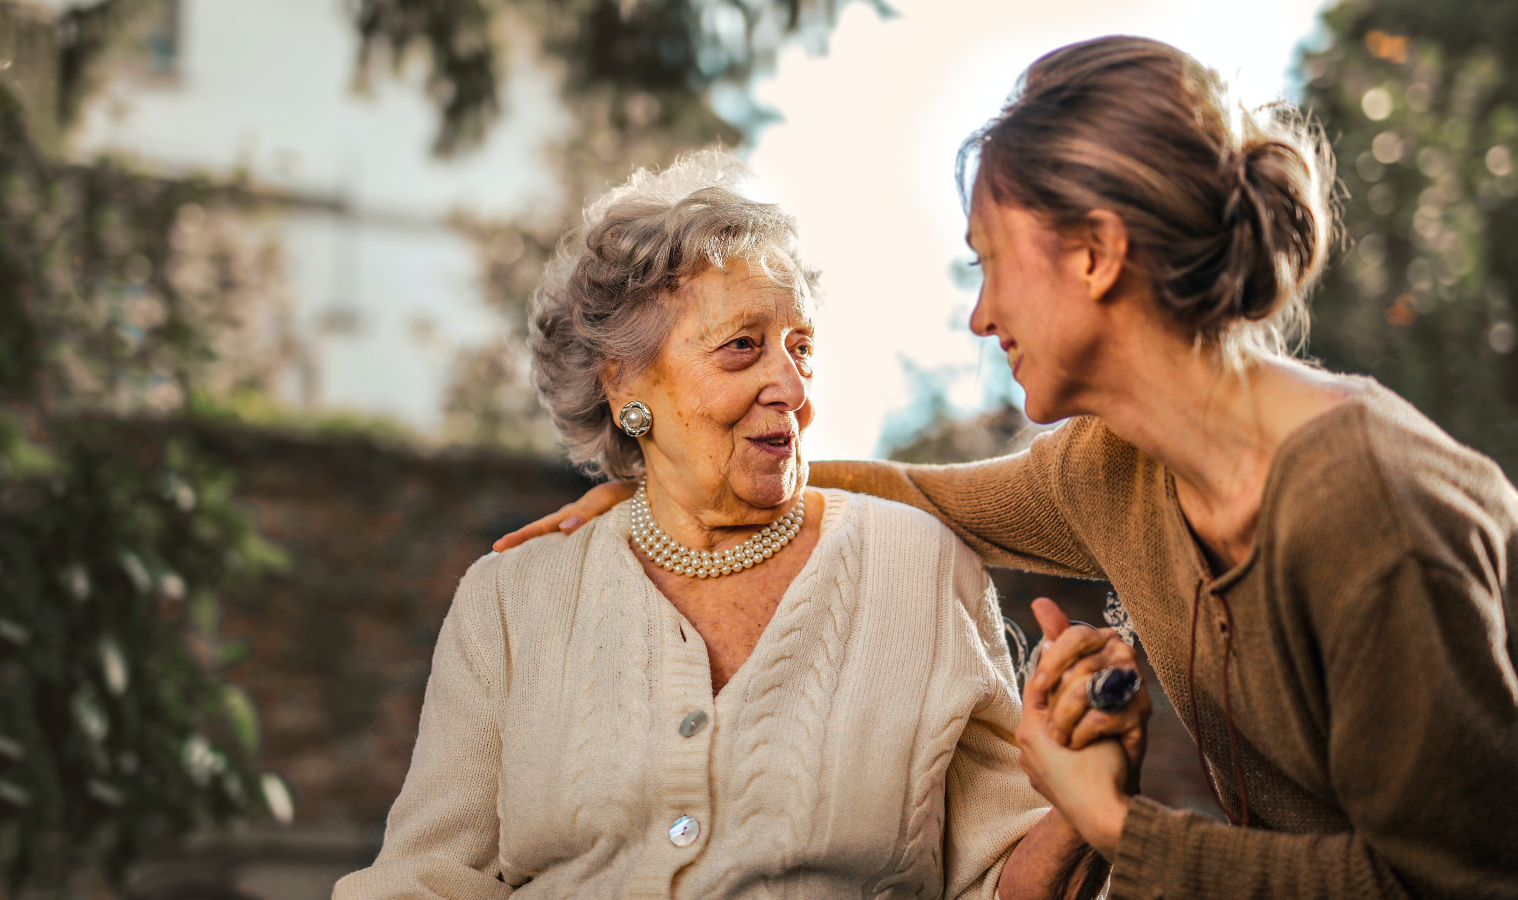 A woman chatting with an elderly woman